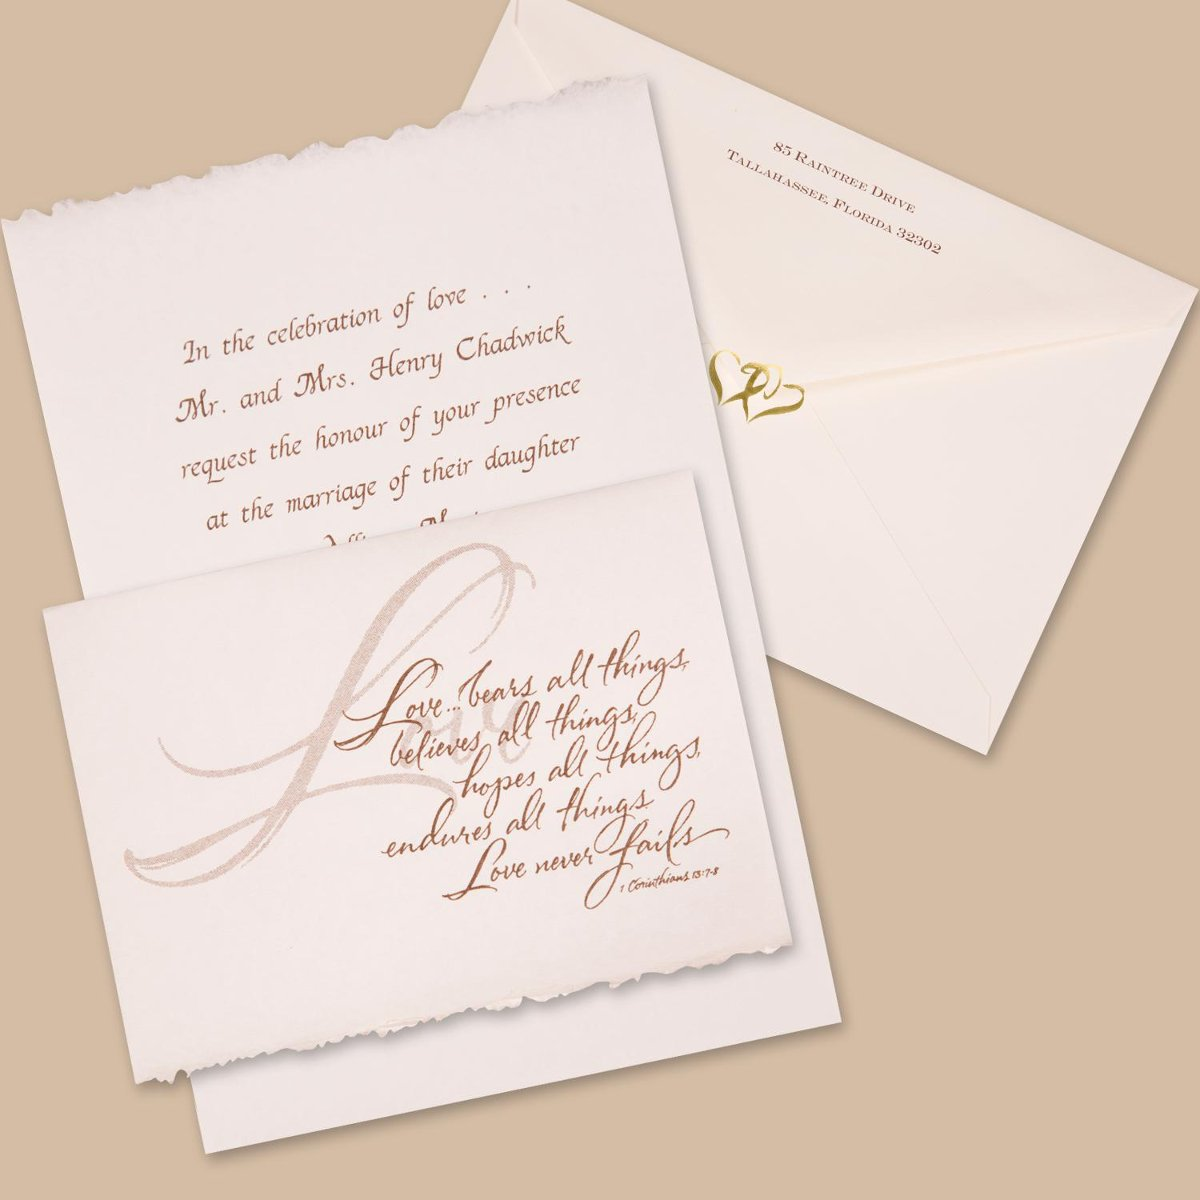 christian wedding invitation wordings for friends wedding invitations in spanish just believe wedding invitations a french fold of white deckle edge